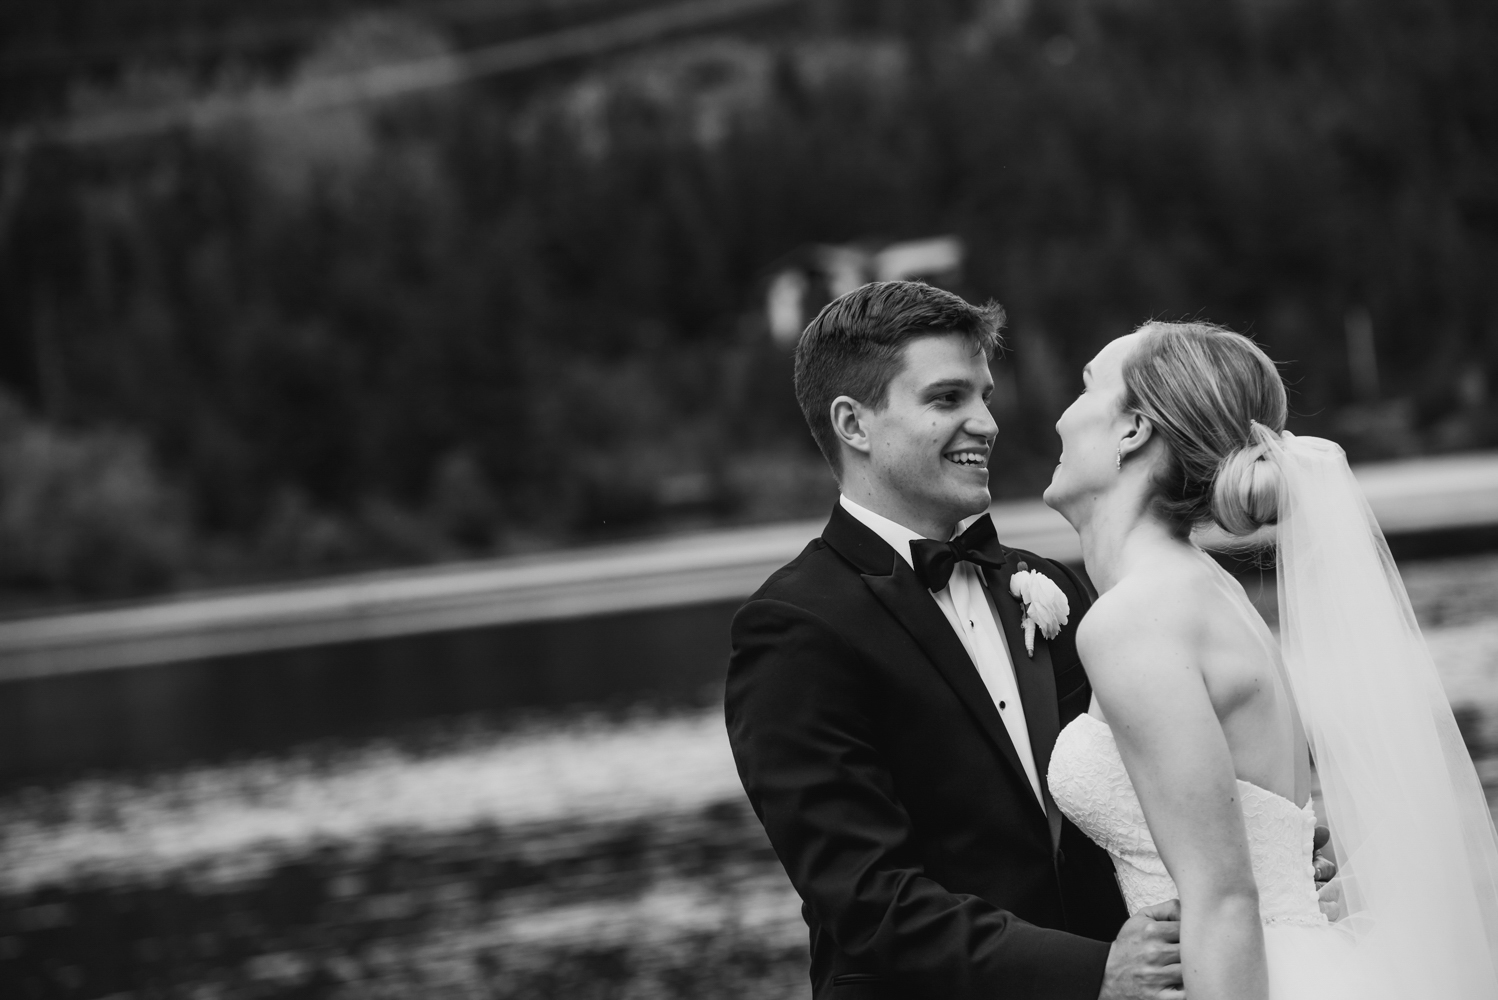 Nitalake wedding88.jpg